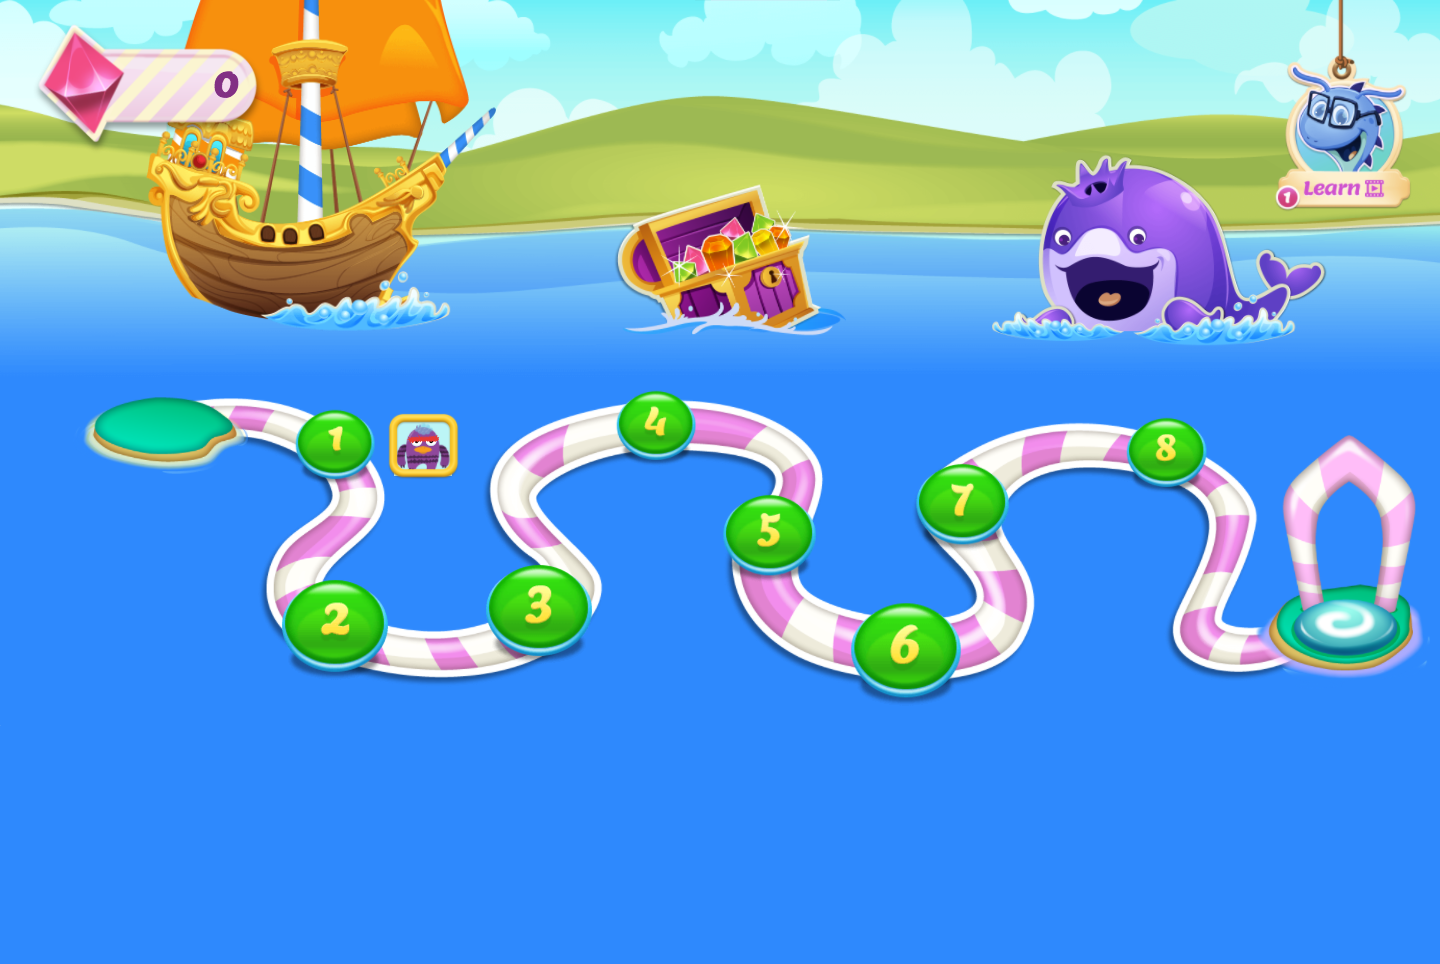 FunBrain is the 1 site for online educational games for